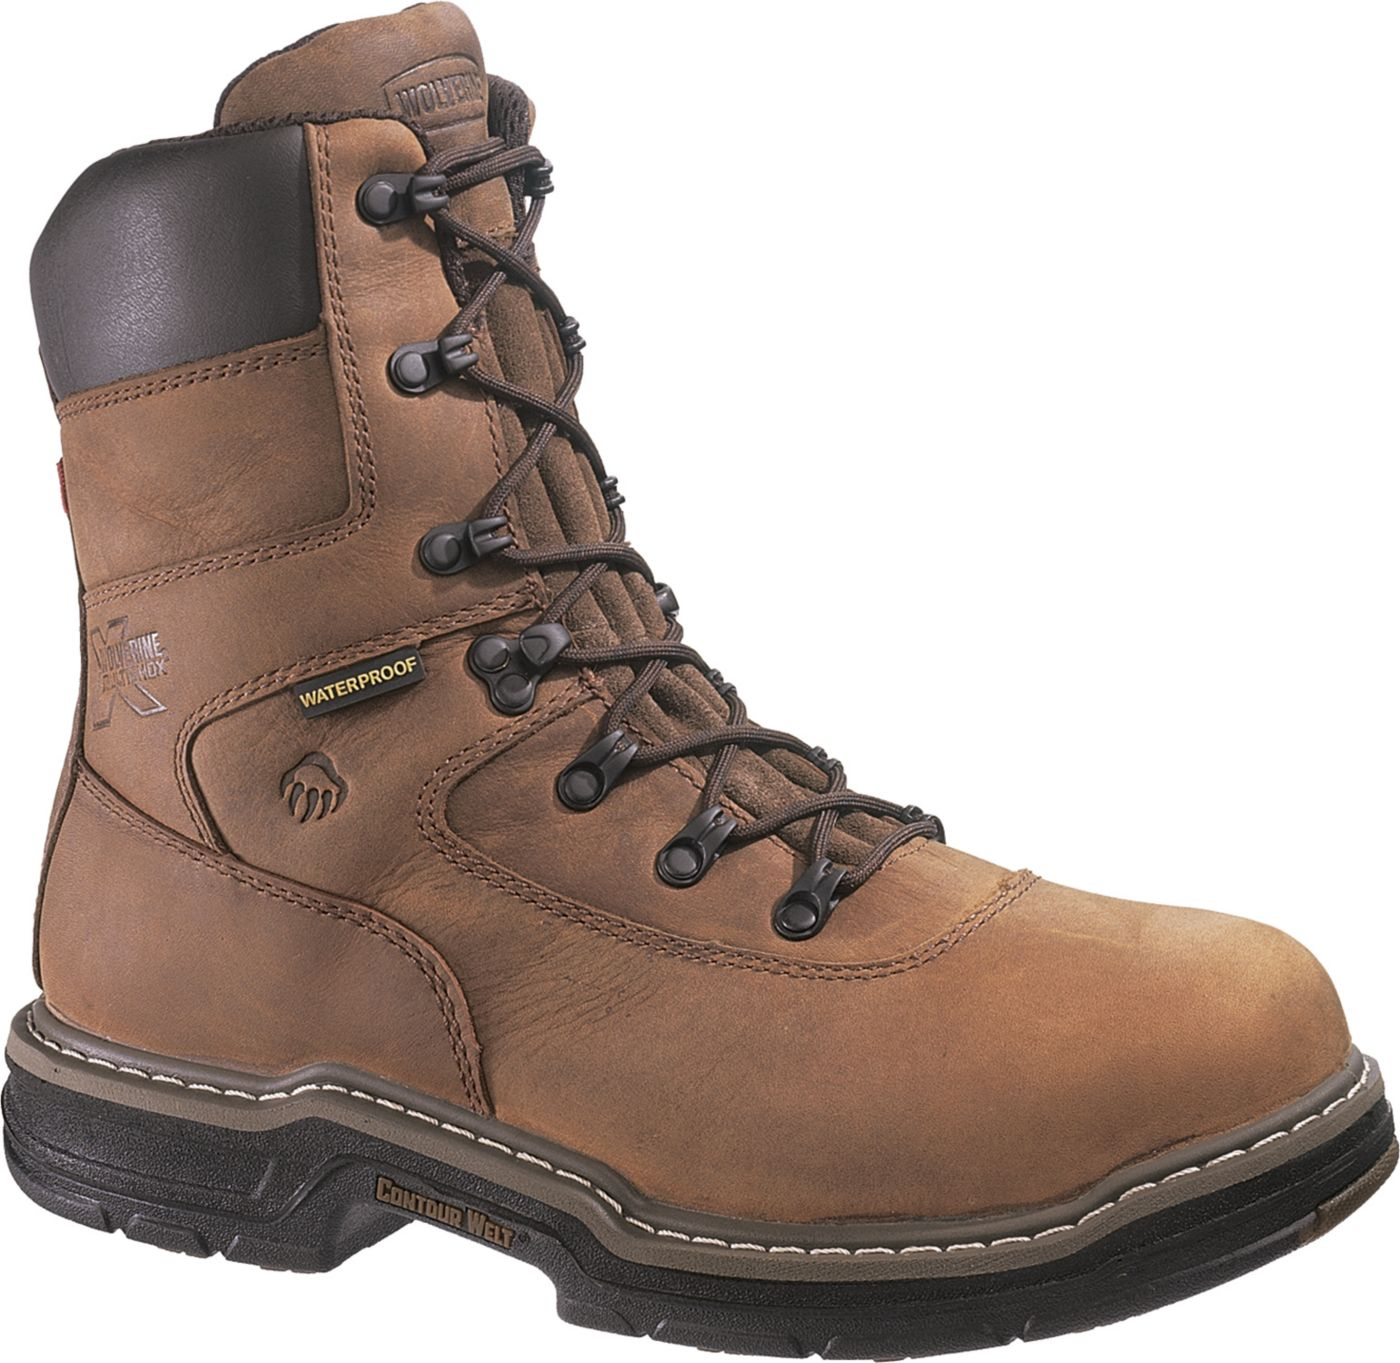 "Wolverine Men's Marauder 8"" 400g Waterproof Steel Toe Work Boots"